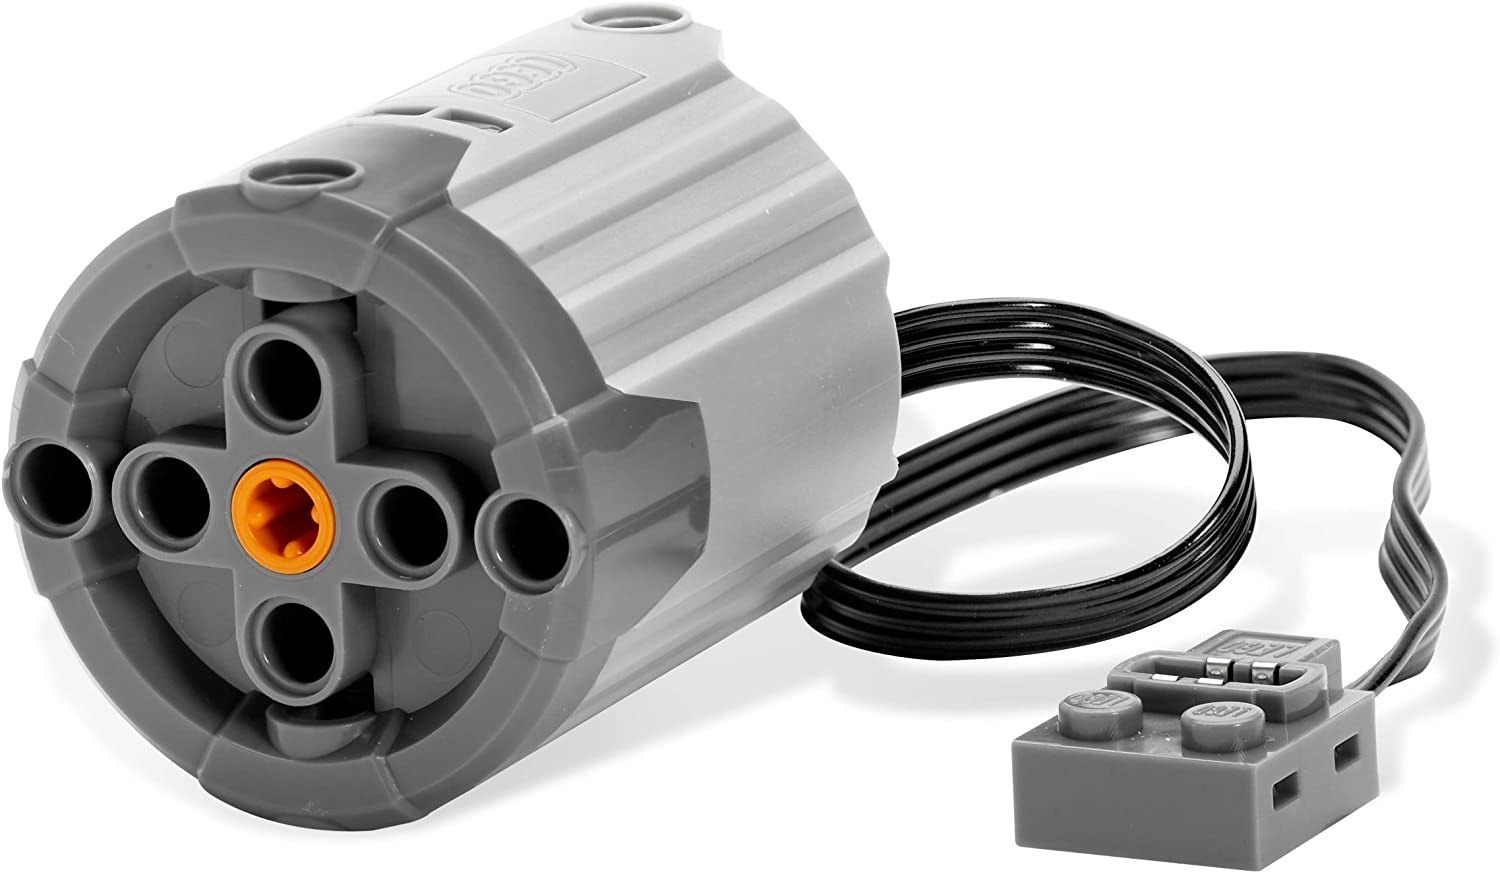 LEGO Functions Power Functions XL-Motor 8882 (1 Piece)